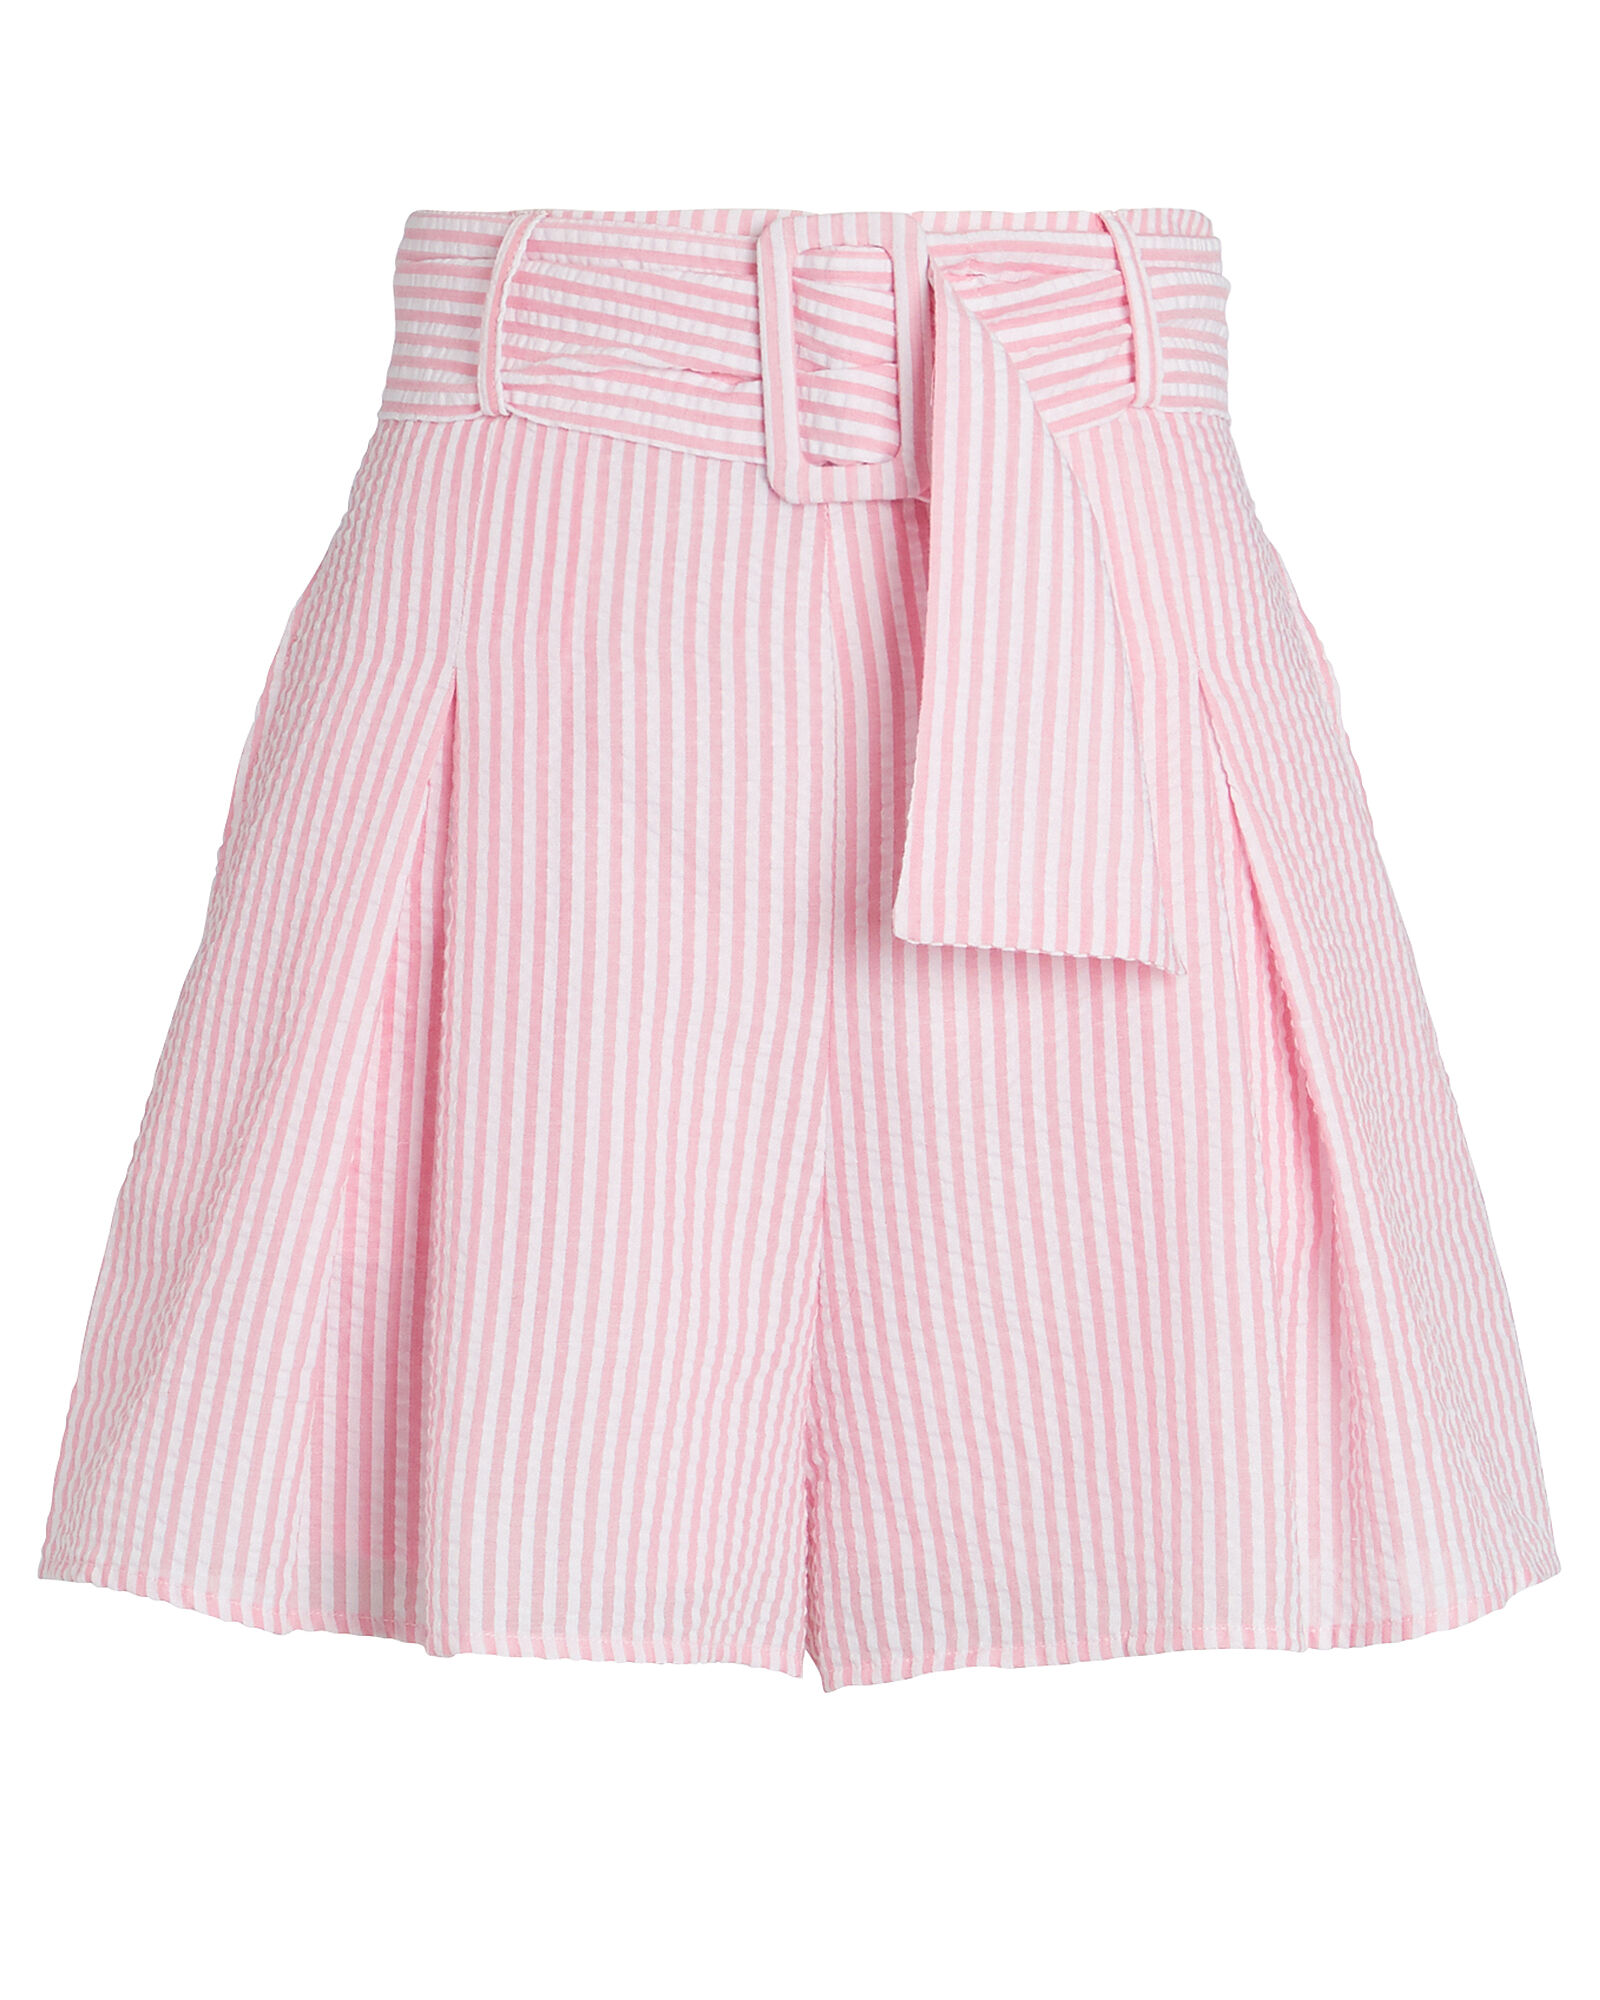 Everywhere You Go Belted Shorts, PINK, hi-res